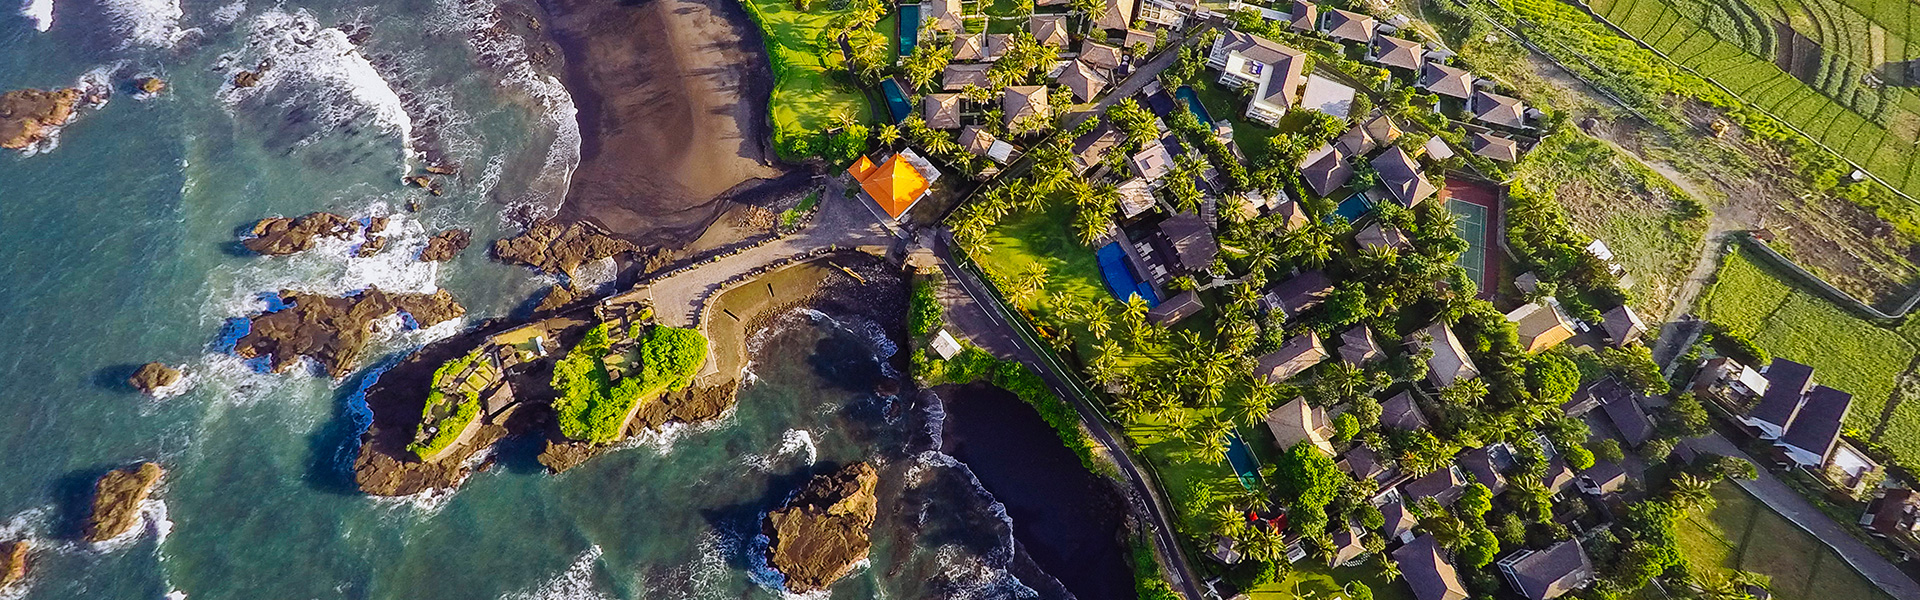 Bali Villas Beachfront Living at Its Best